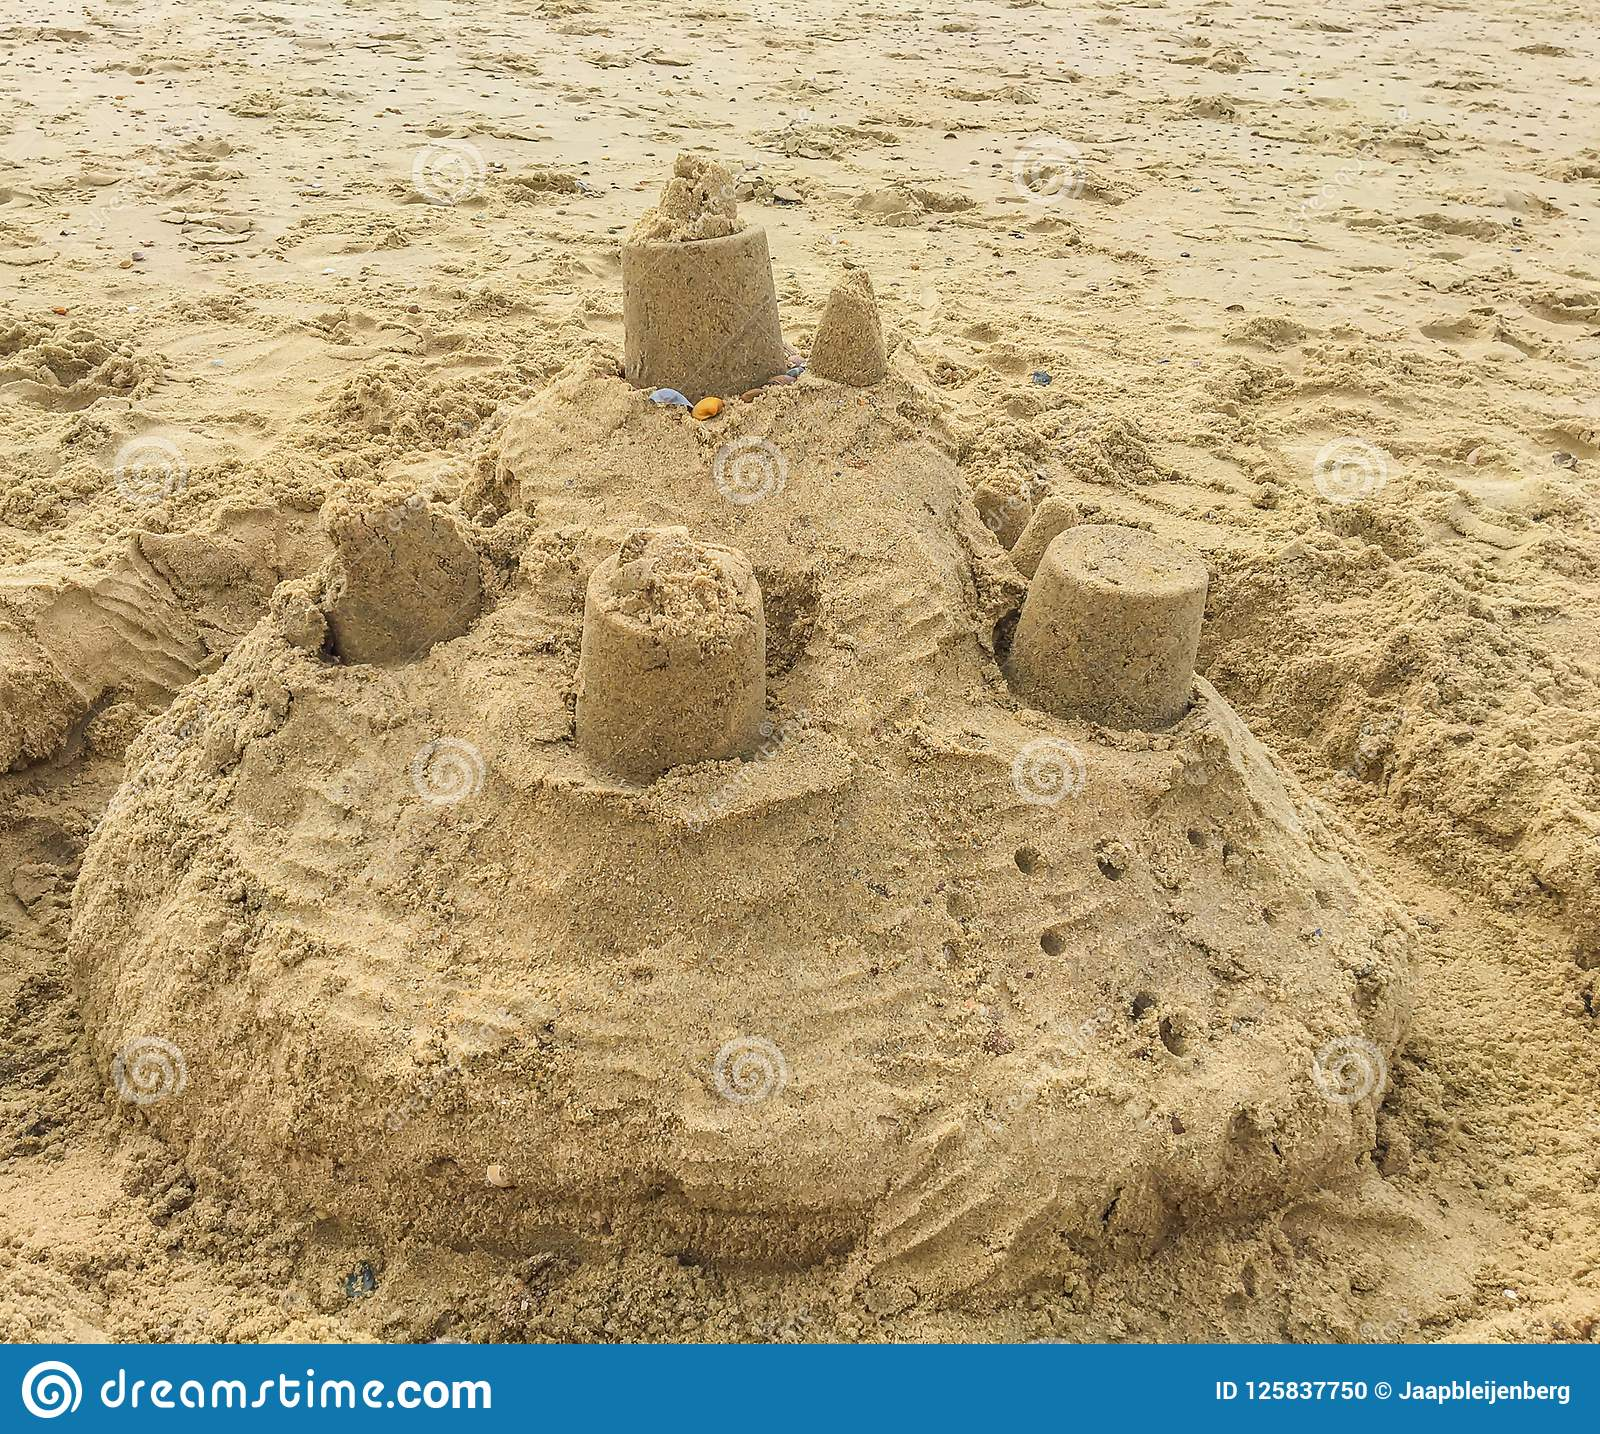 Sand castle construction with towers and shells on the beach sand landscape